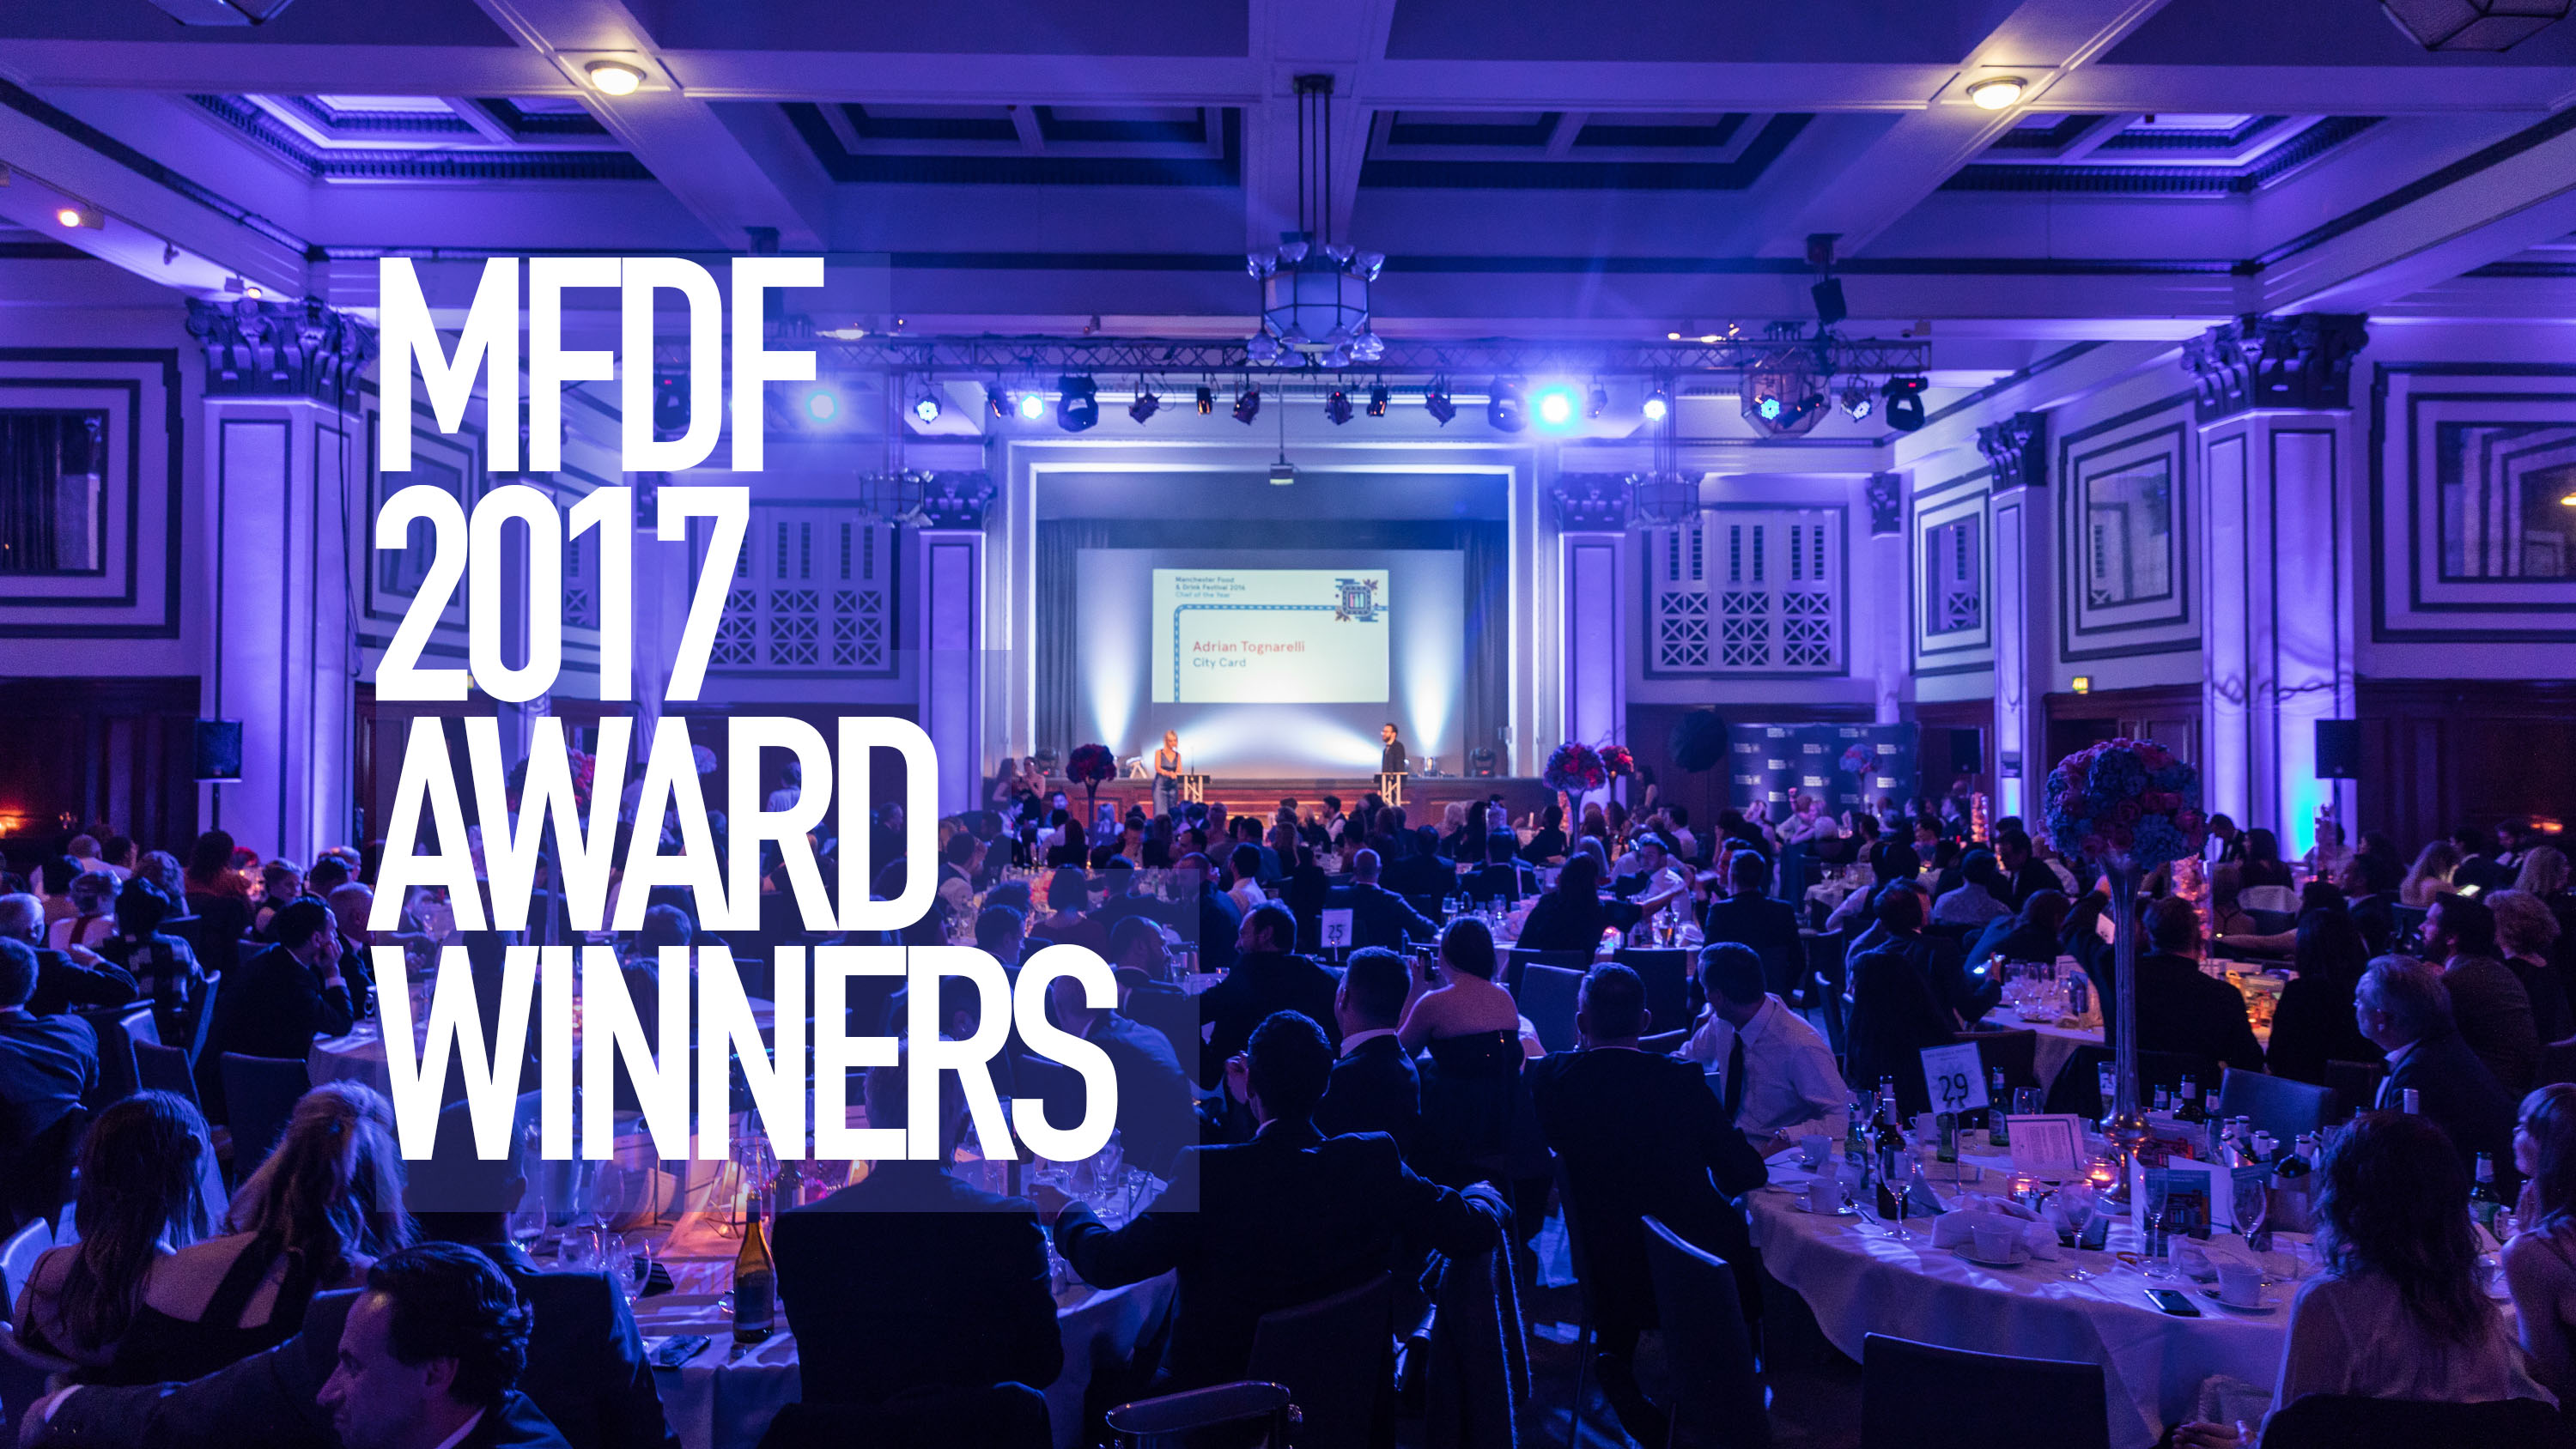 Winners of Manchester Food and Drink Awards 2017